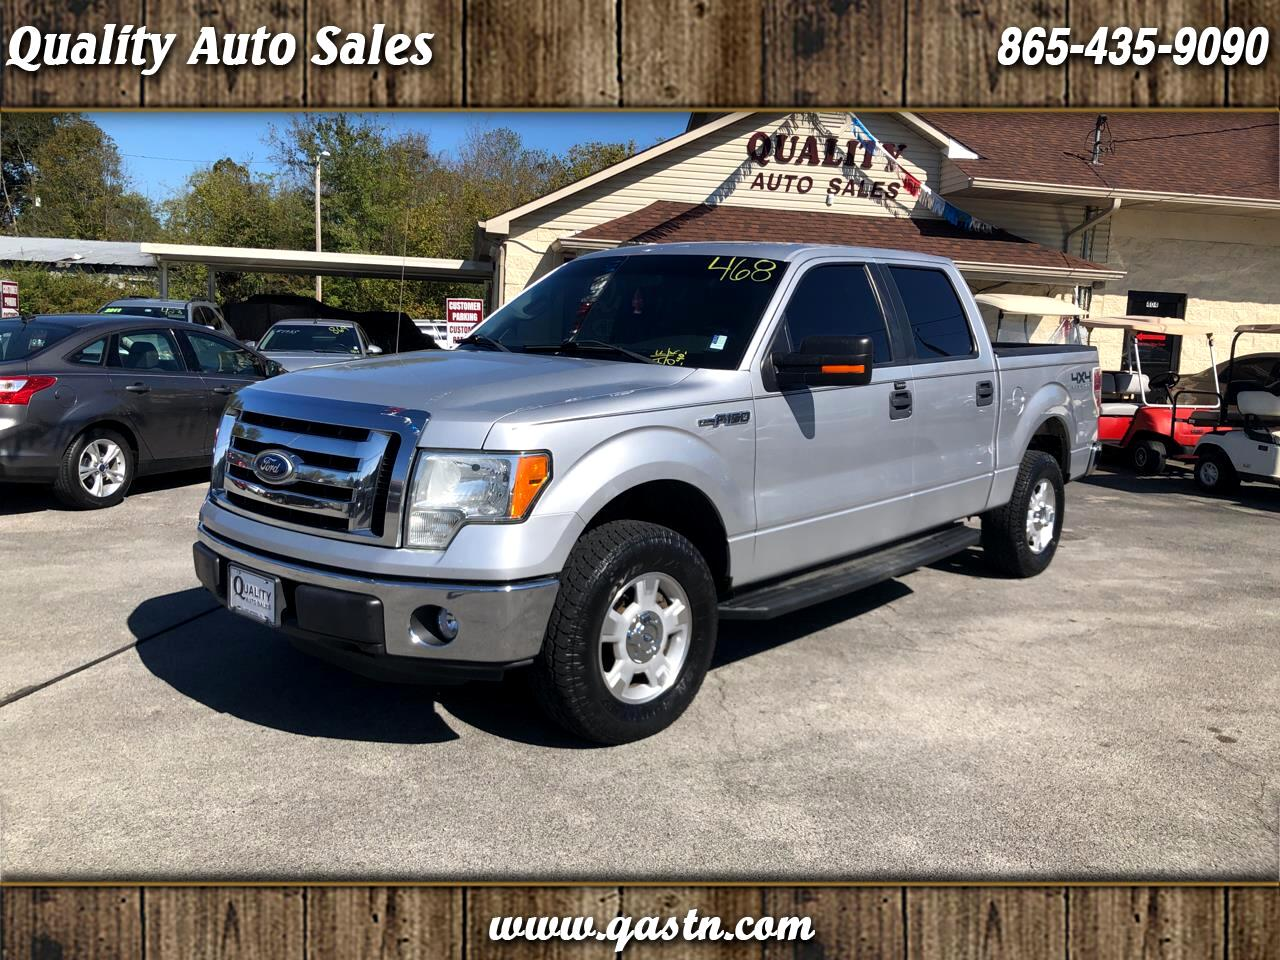 2011 Ford 1/2 Ton Truck